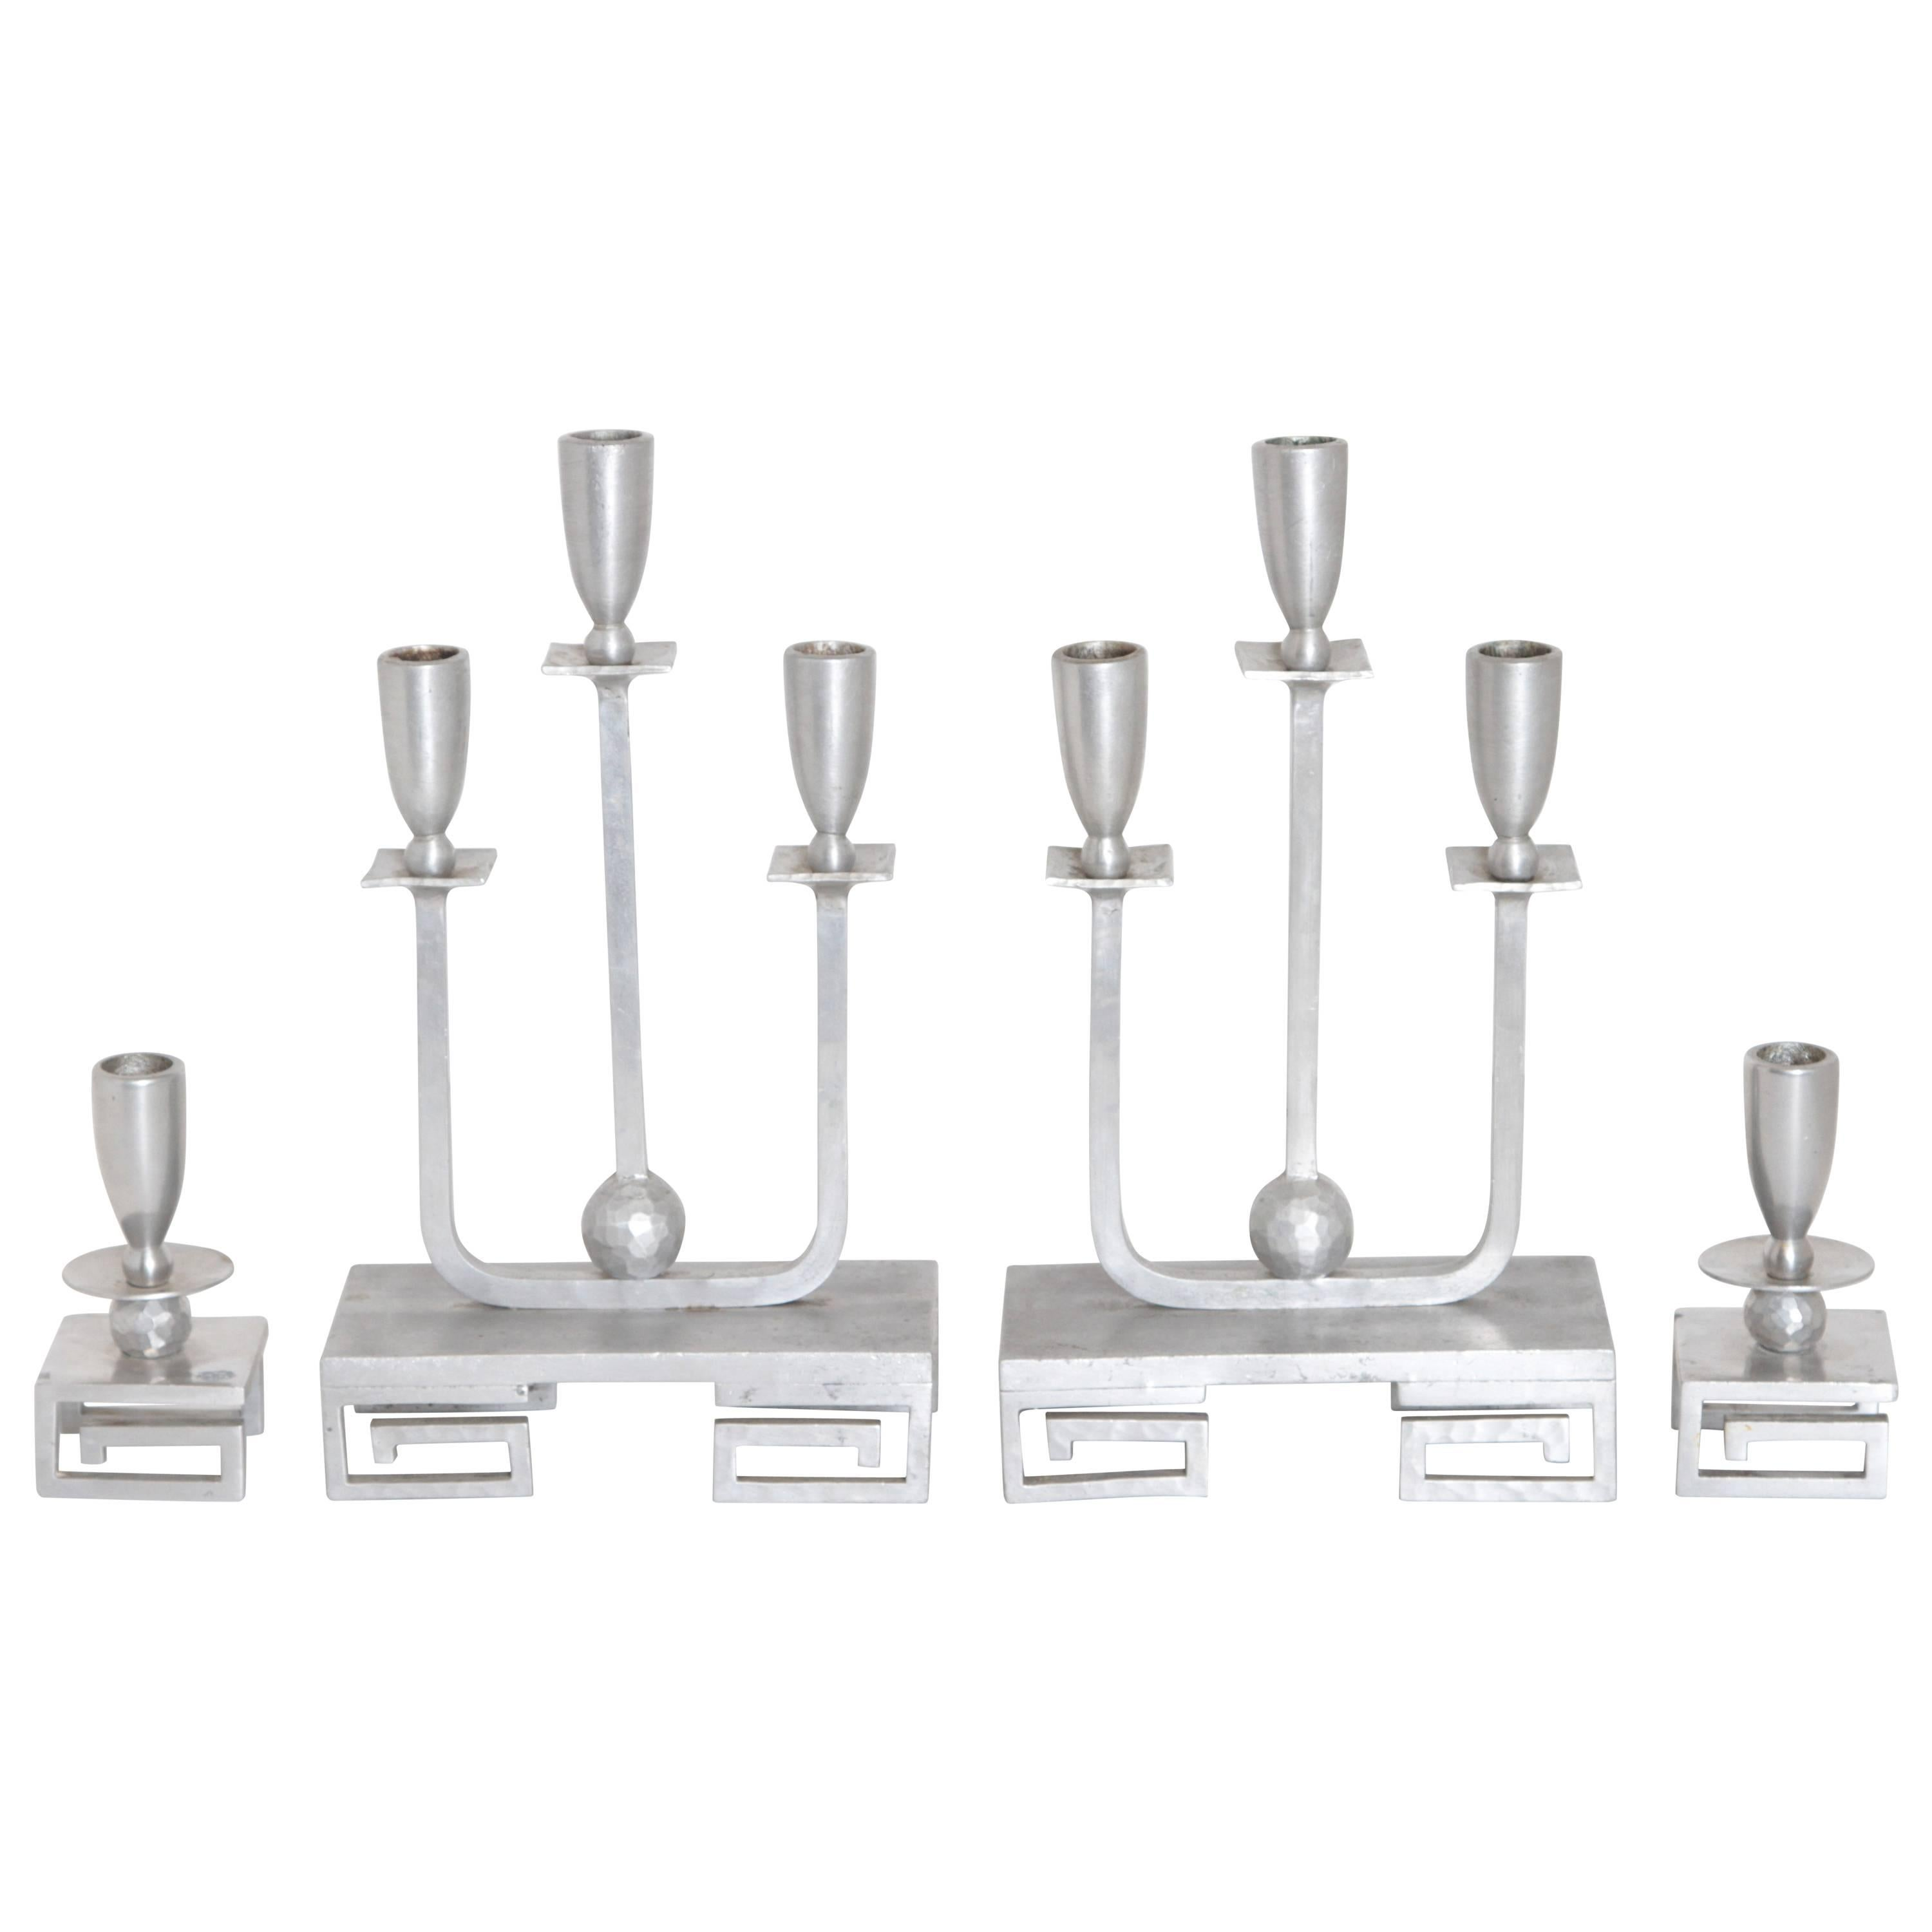 Machine Age Hand-Wrought Aluminium Palmer Smith Candlestick Holders, Two Pairs